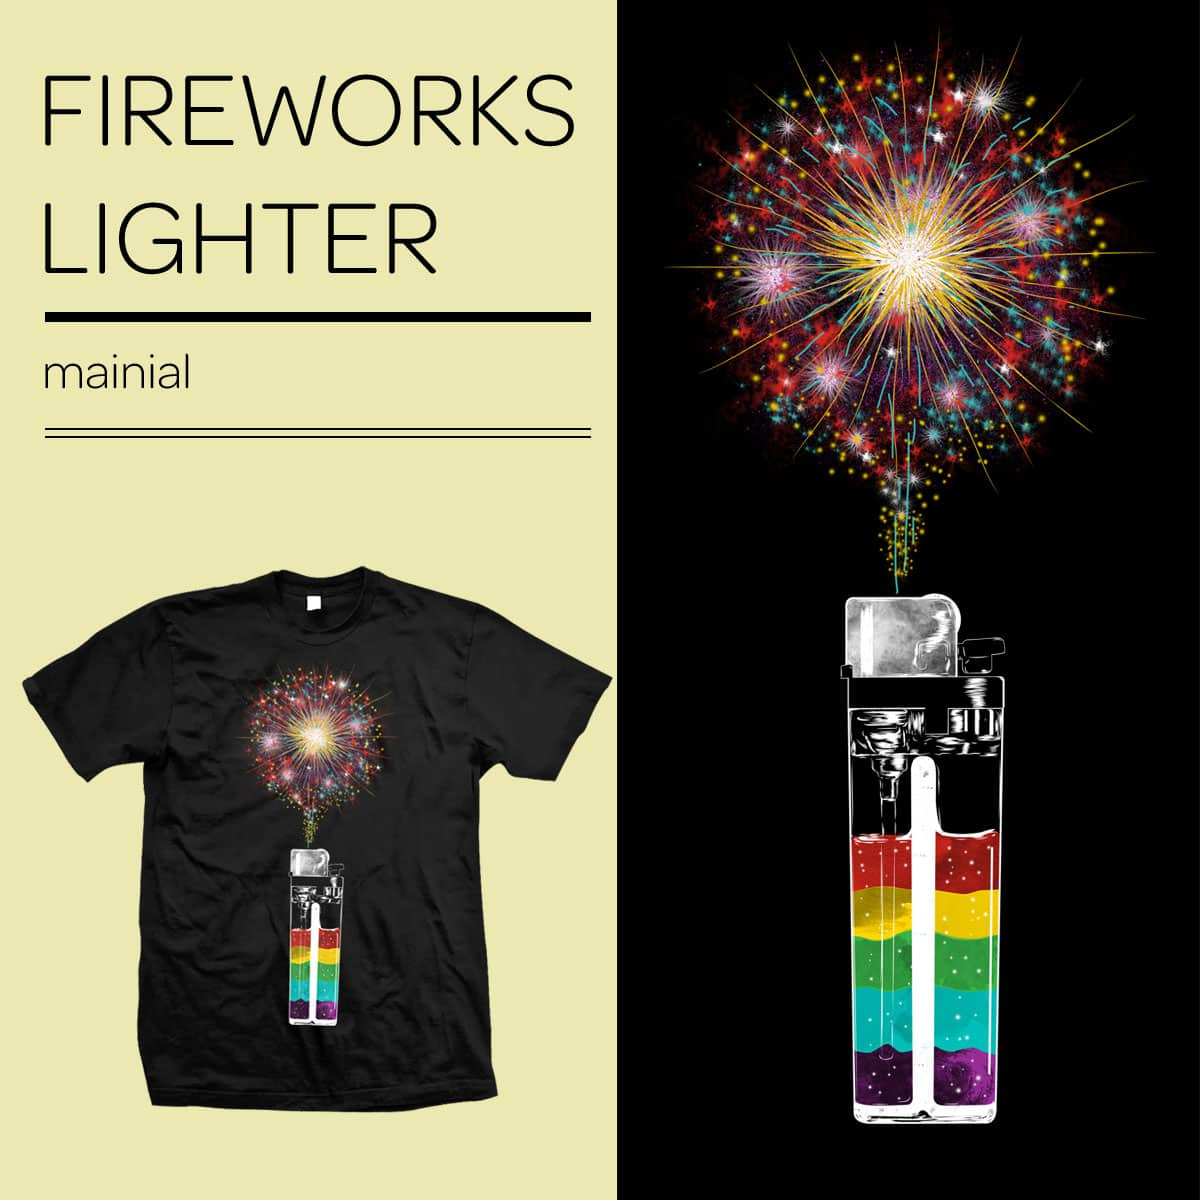 Fireworks Lighter by mainial on Threadless